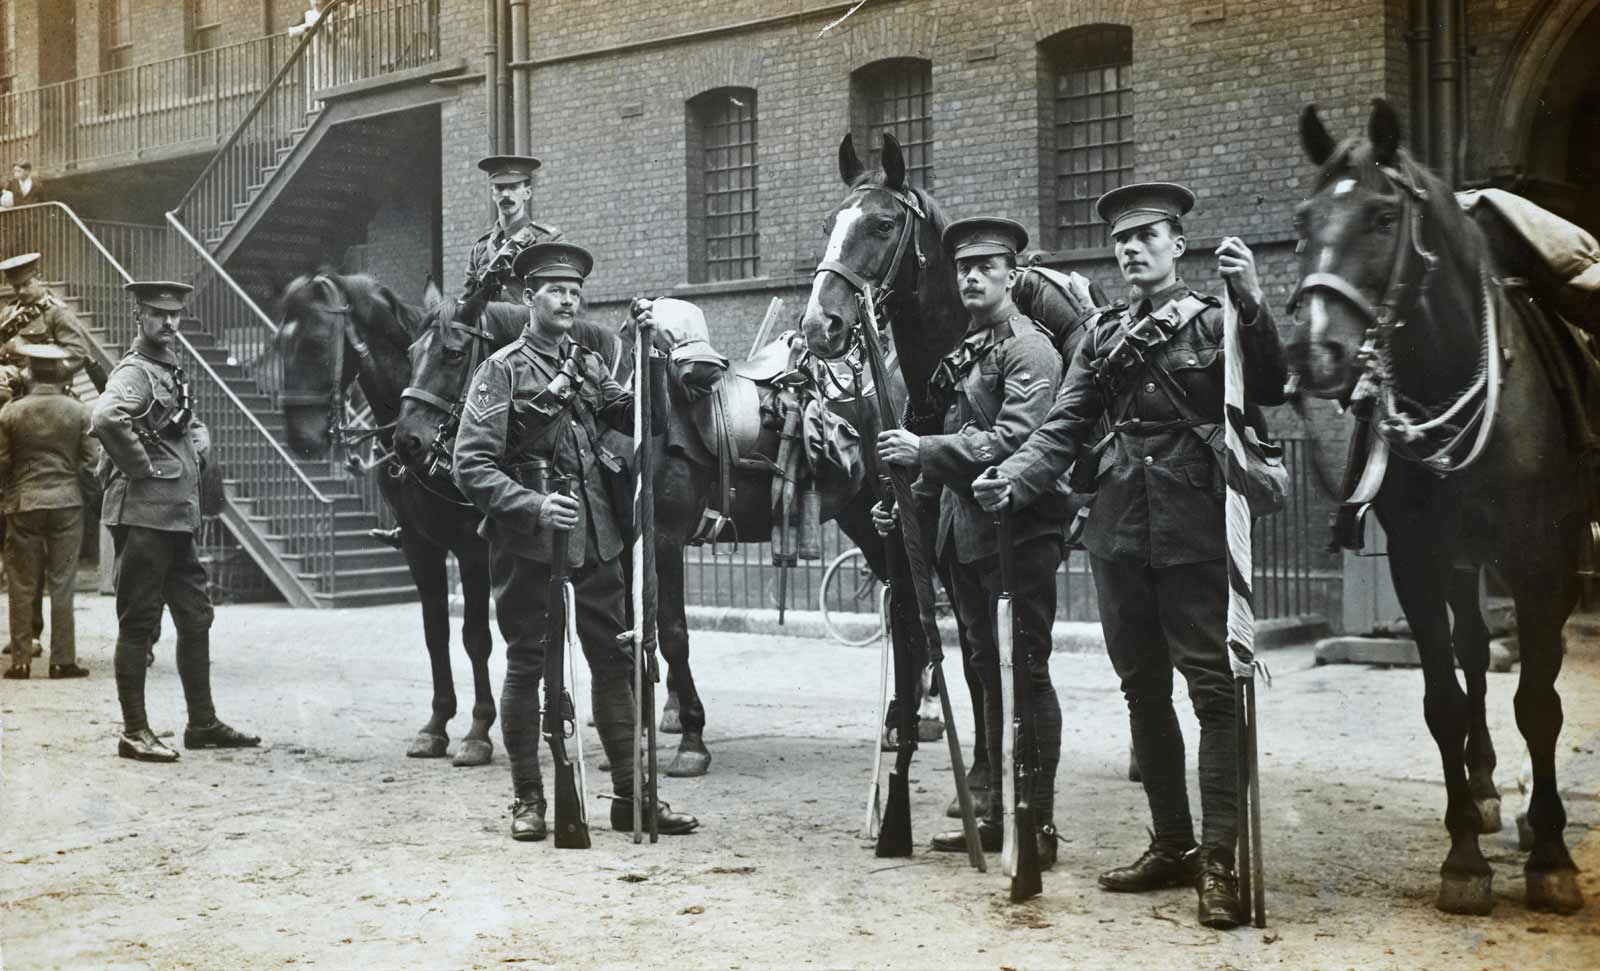 1st Life Guards mobilising at Knightsbridge Barracks to leave for France, August 1914, by Christina Broom